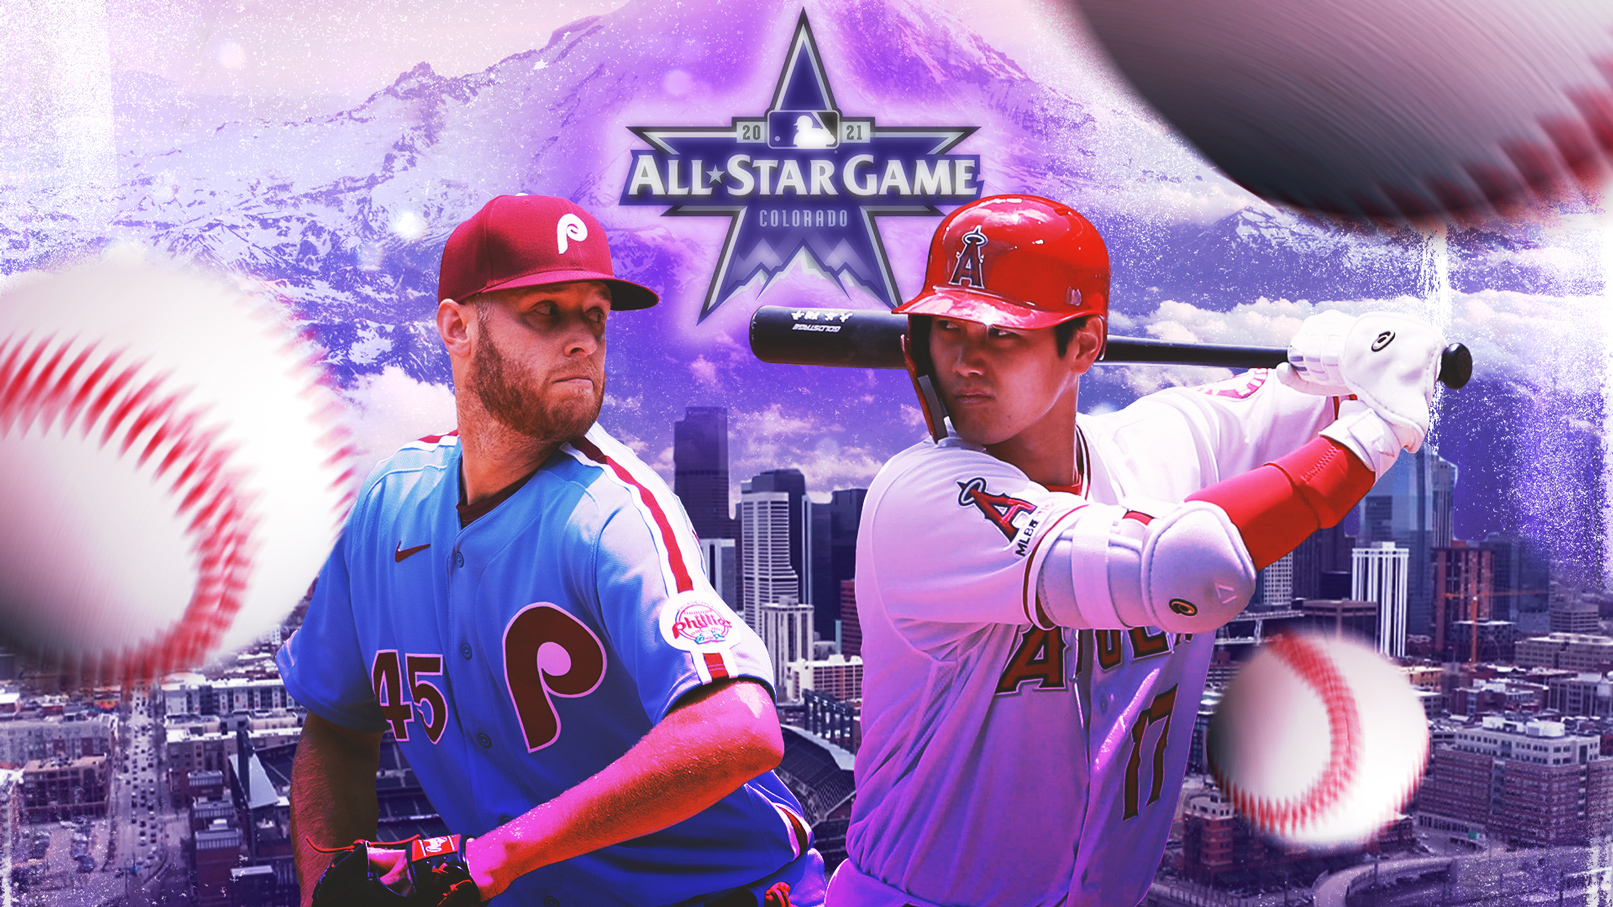 Sights & sounds from Day 3 at the MLB All-Star Game